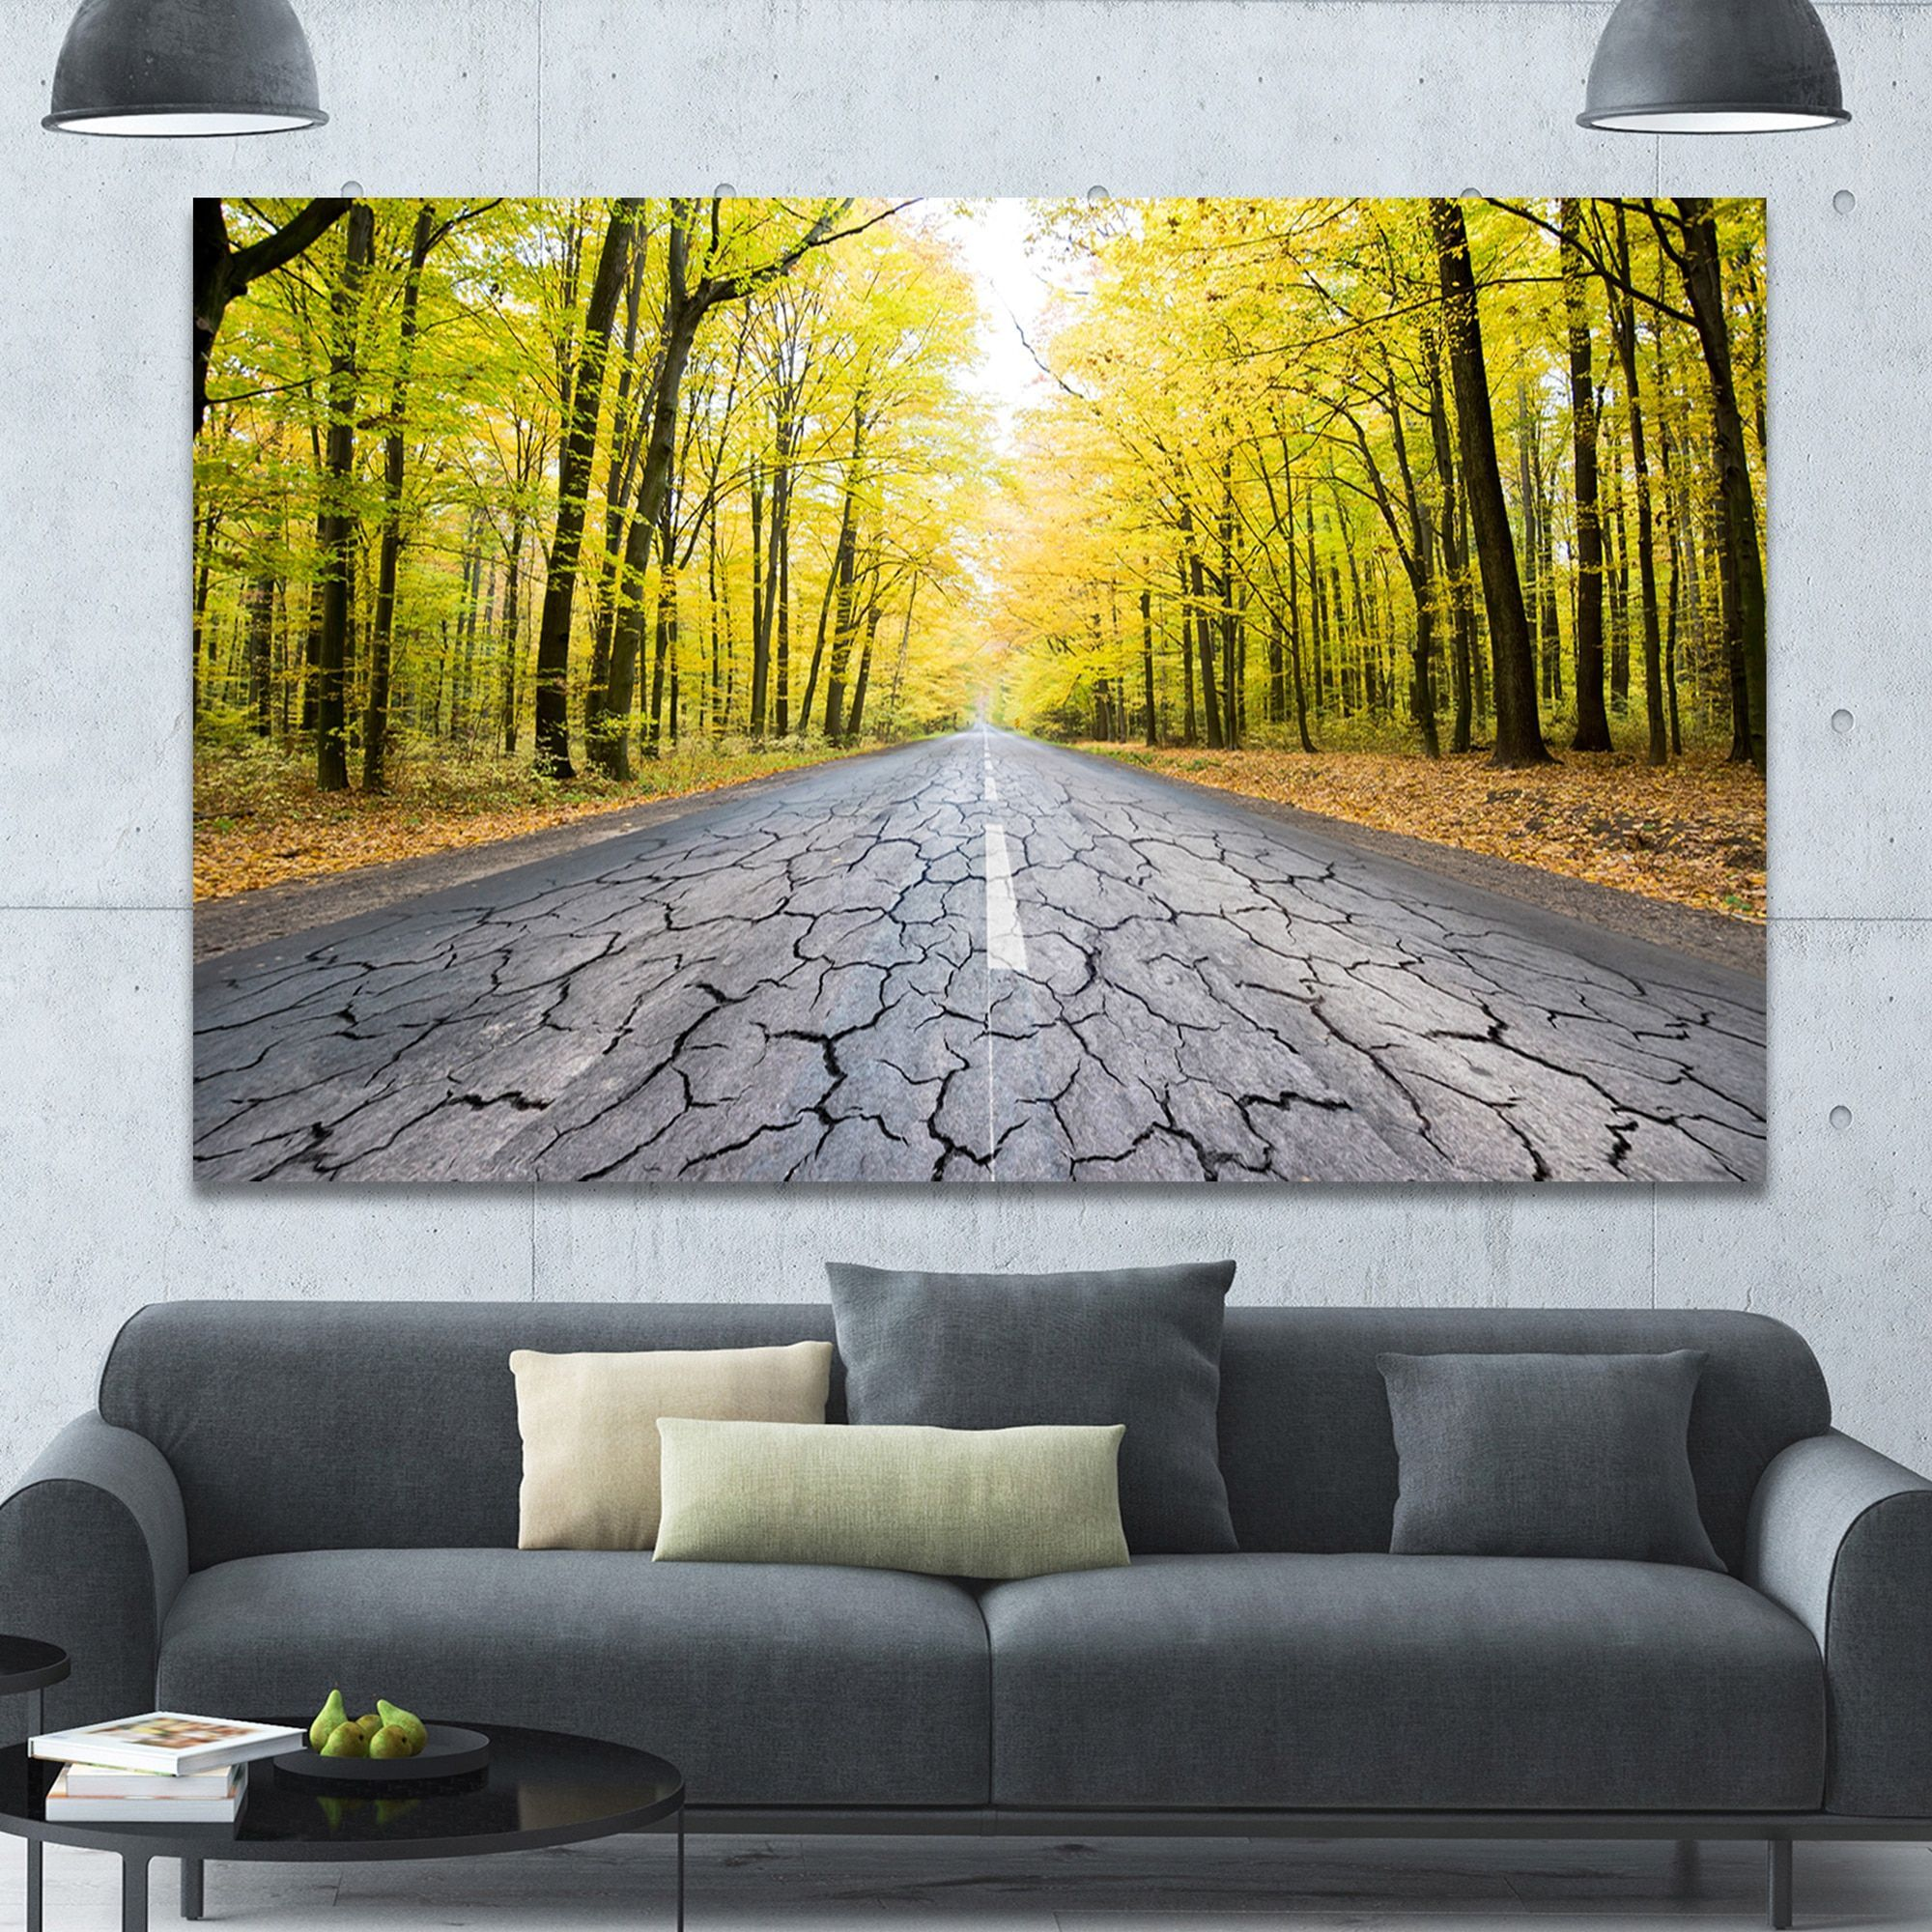 Designart \'Cracked Road in the Forest\' Extra Large Landscape Canvas ...